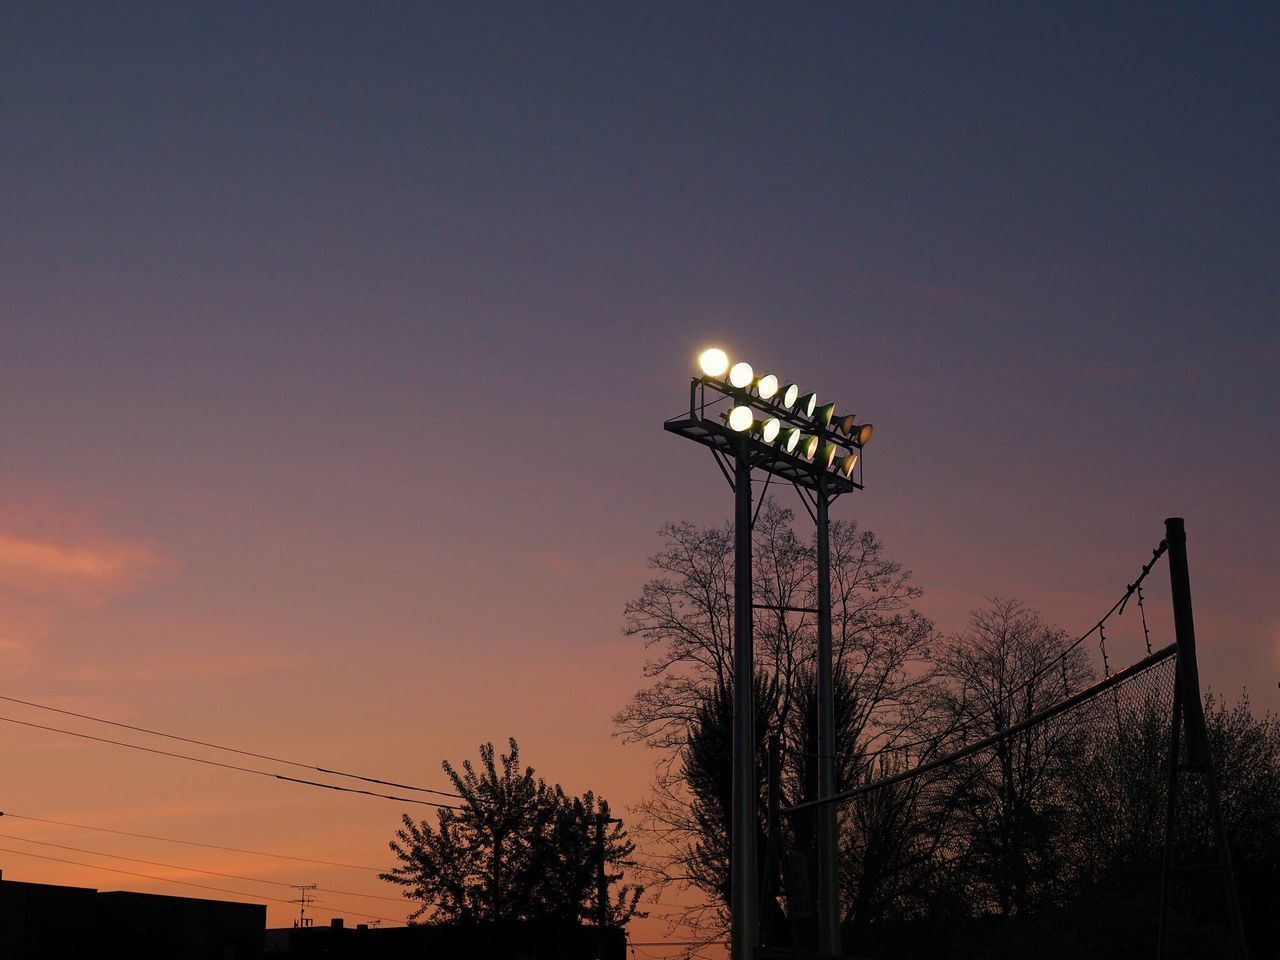 Sunset Sky Outdoors Silhouette Floodlight 空 野球場